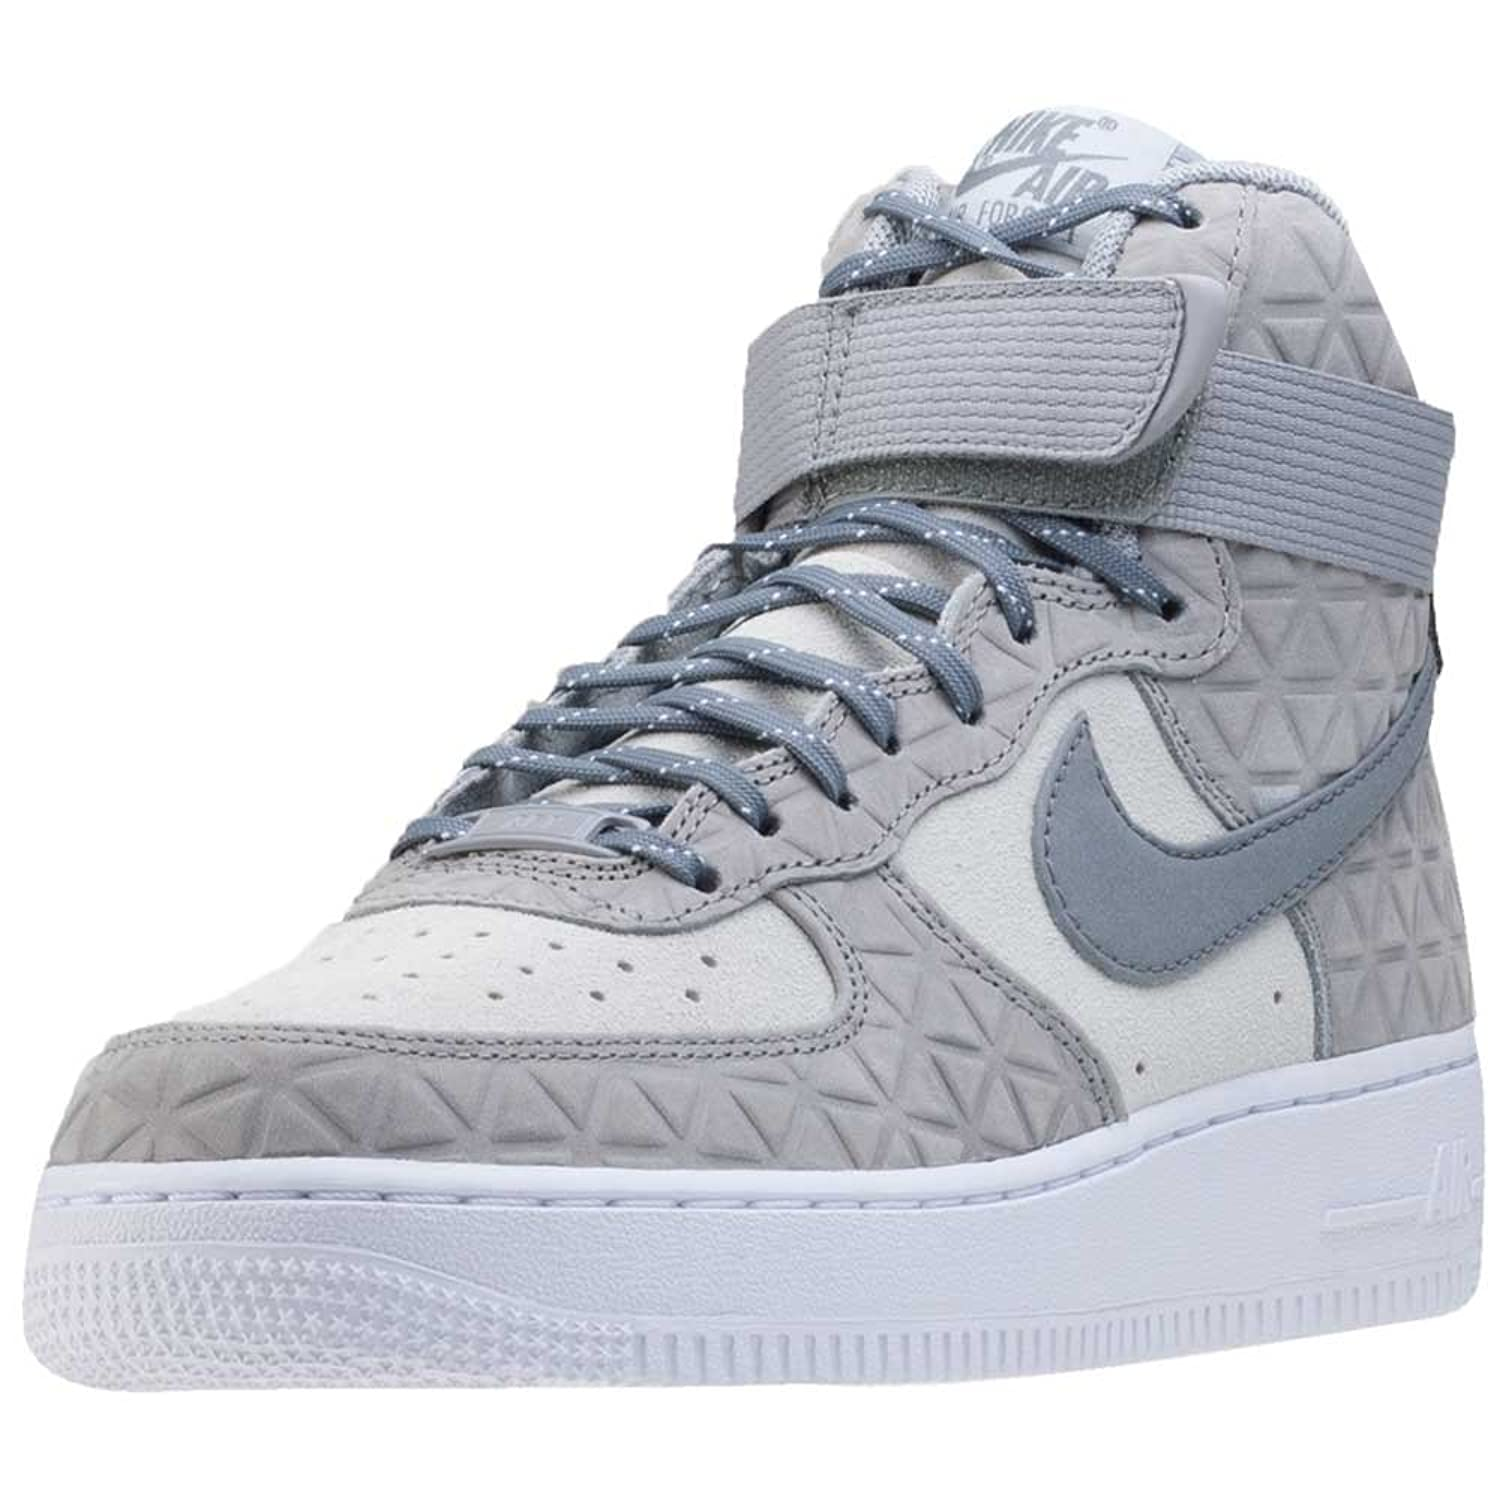 55971c5489b5 Nike AIR FORCE 1 HI PRM SUEDE womens basketball-shoes 845065 50%OFF ...